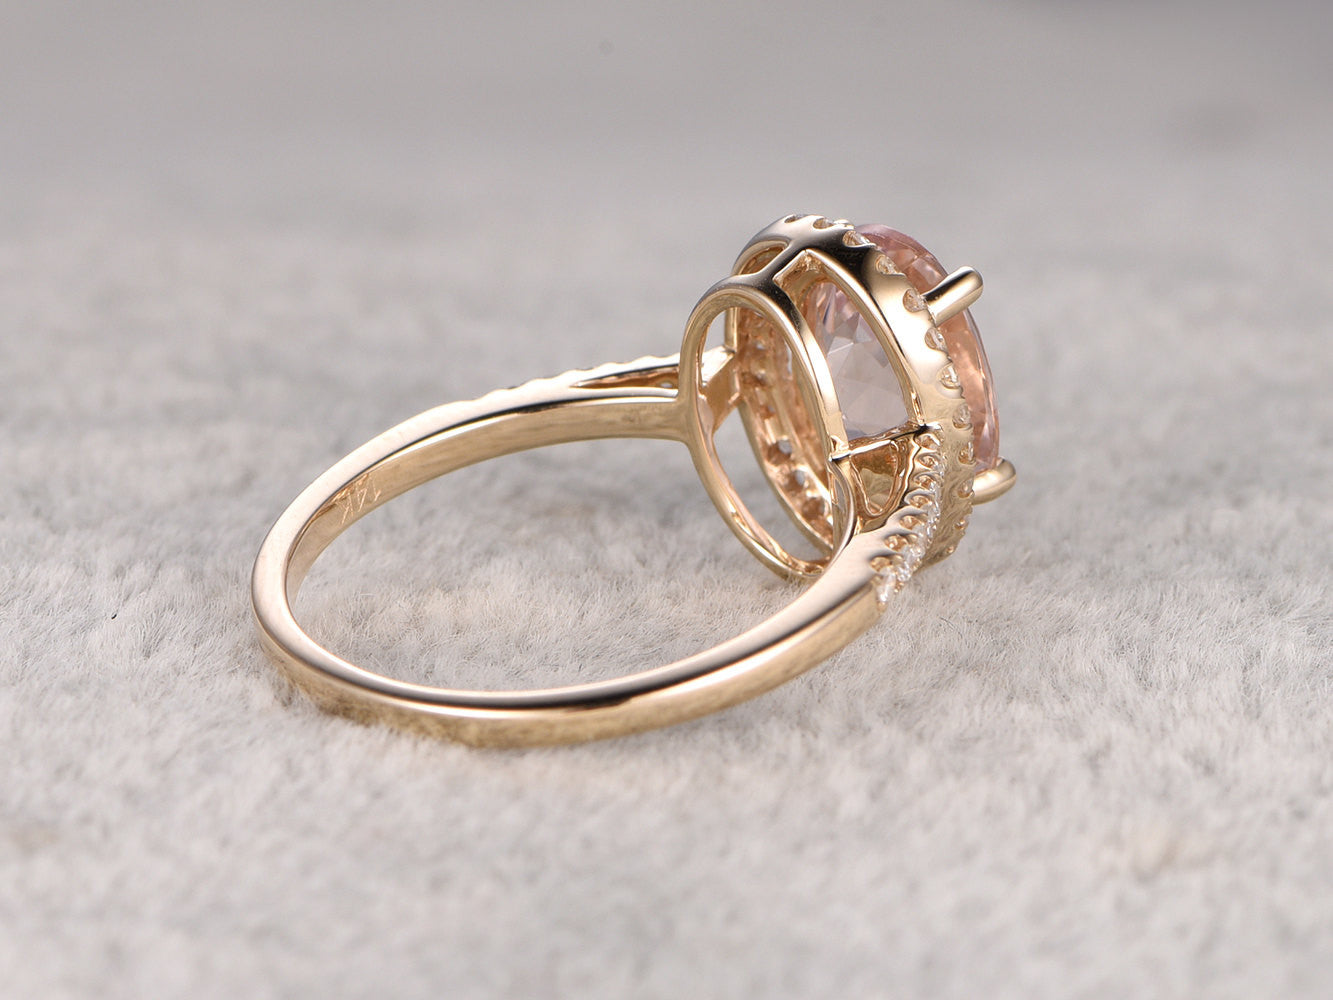 7x9mm Morganite Engagement ring Yellow gold,Diamond wedding band,14k,Oval Cut,Gemstone Promise Bridal Ring,Ball Prongs,Halo Half Eternity